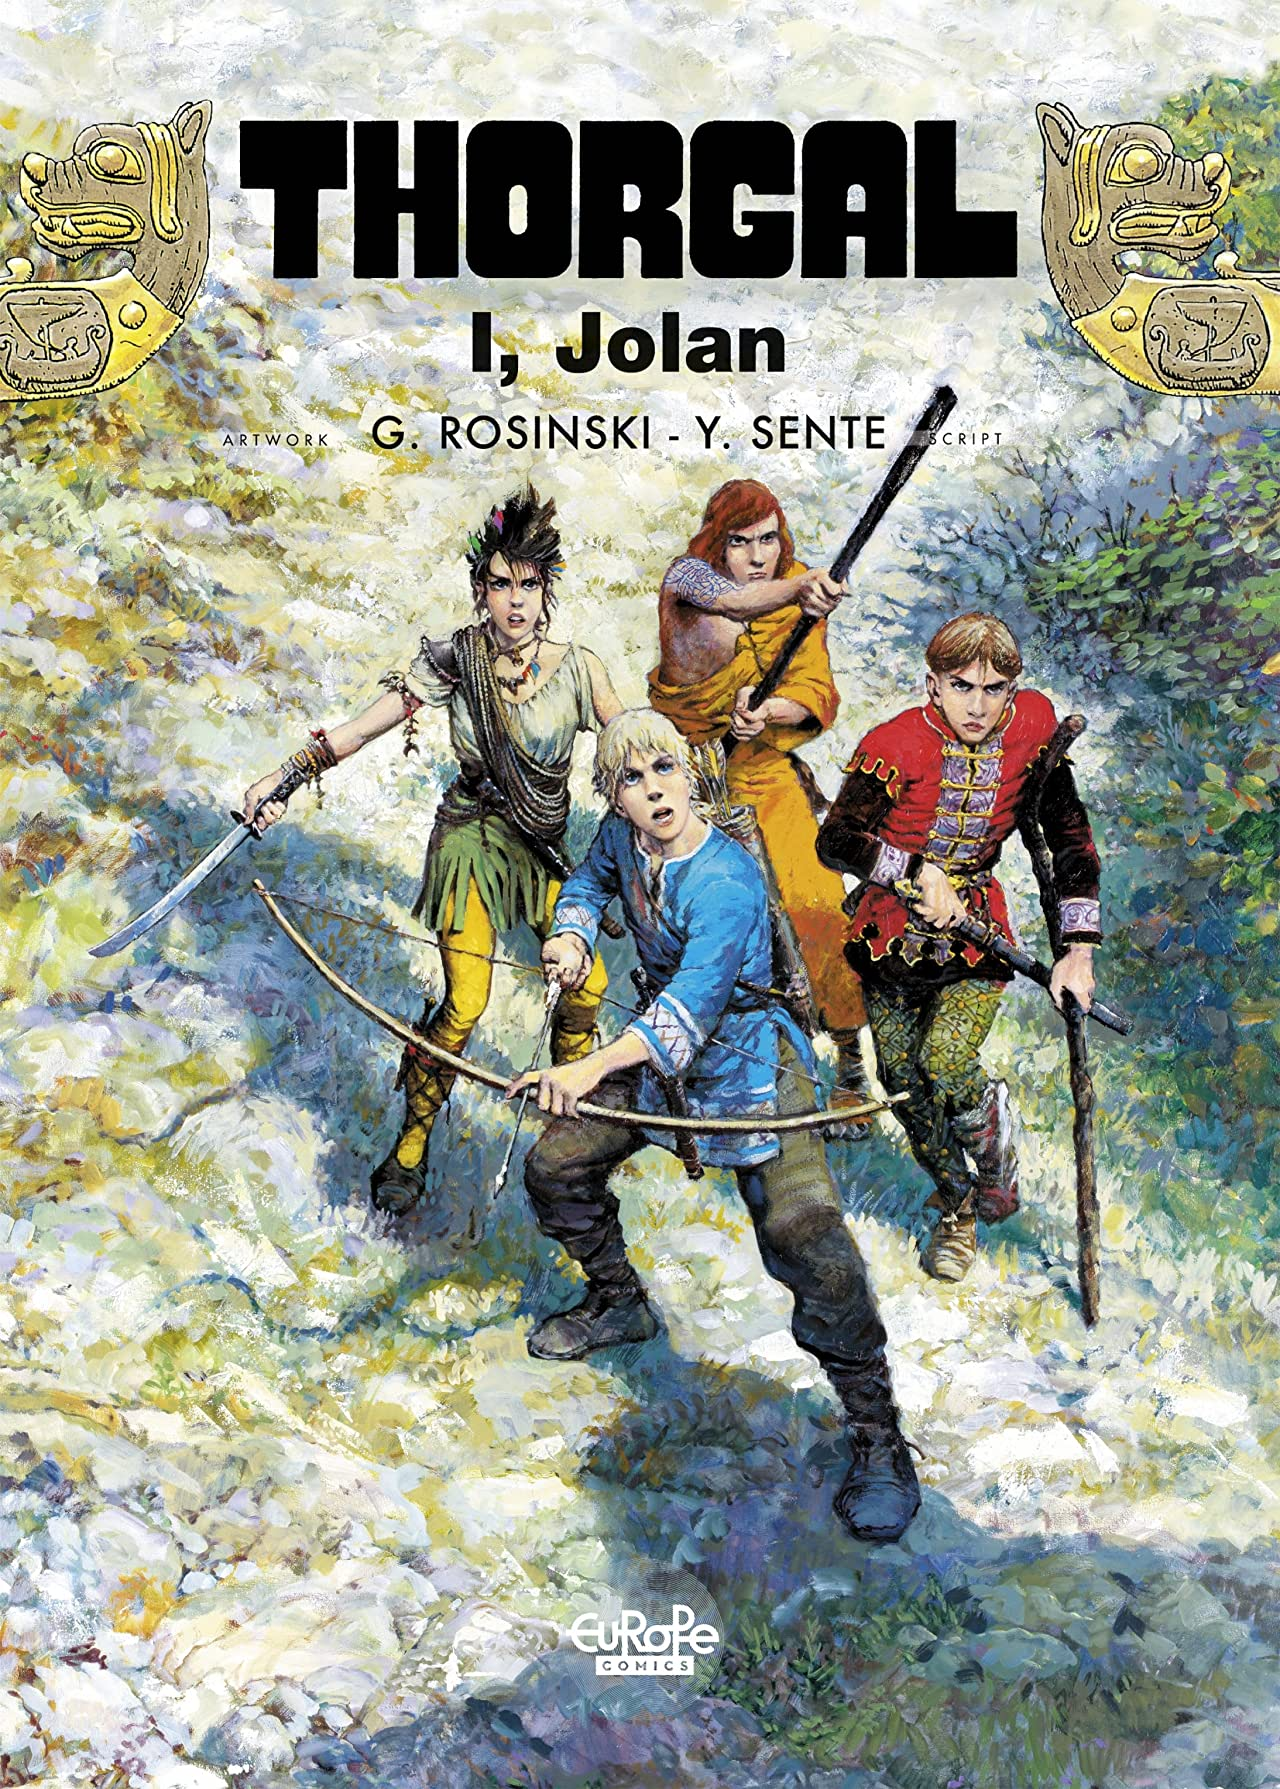 Thorgal Vol. 22: Jolan